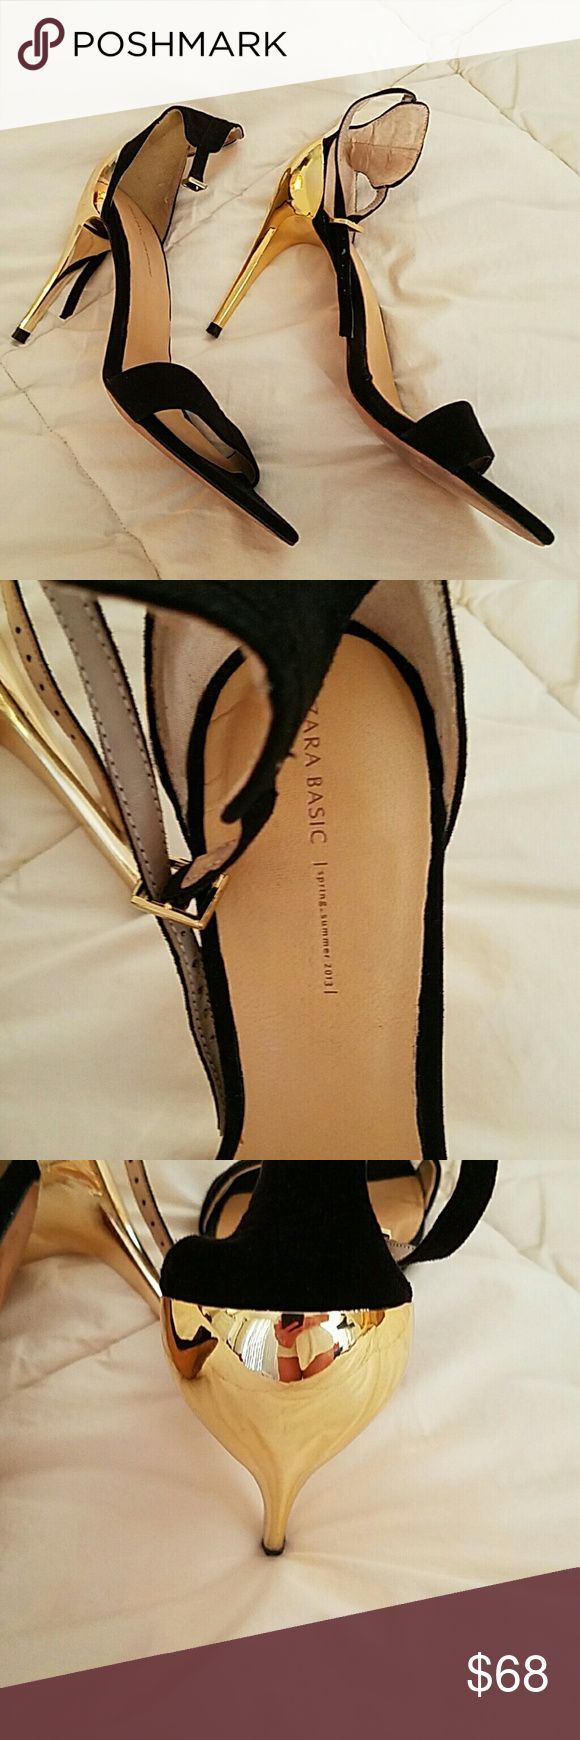 Zara Basic Blk Gold Open Toe Heels Sz 39/9 Gorgeous - Strappy high heeled sandals by Zara Basic Blk and Gold heels!! Size 39/9- worn once perfect condition make offer Zara Shoes Heels